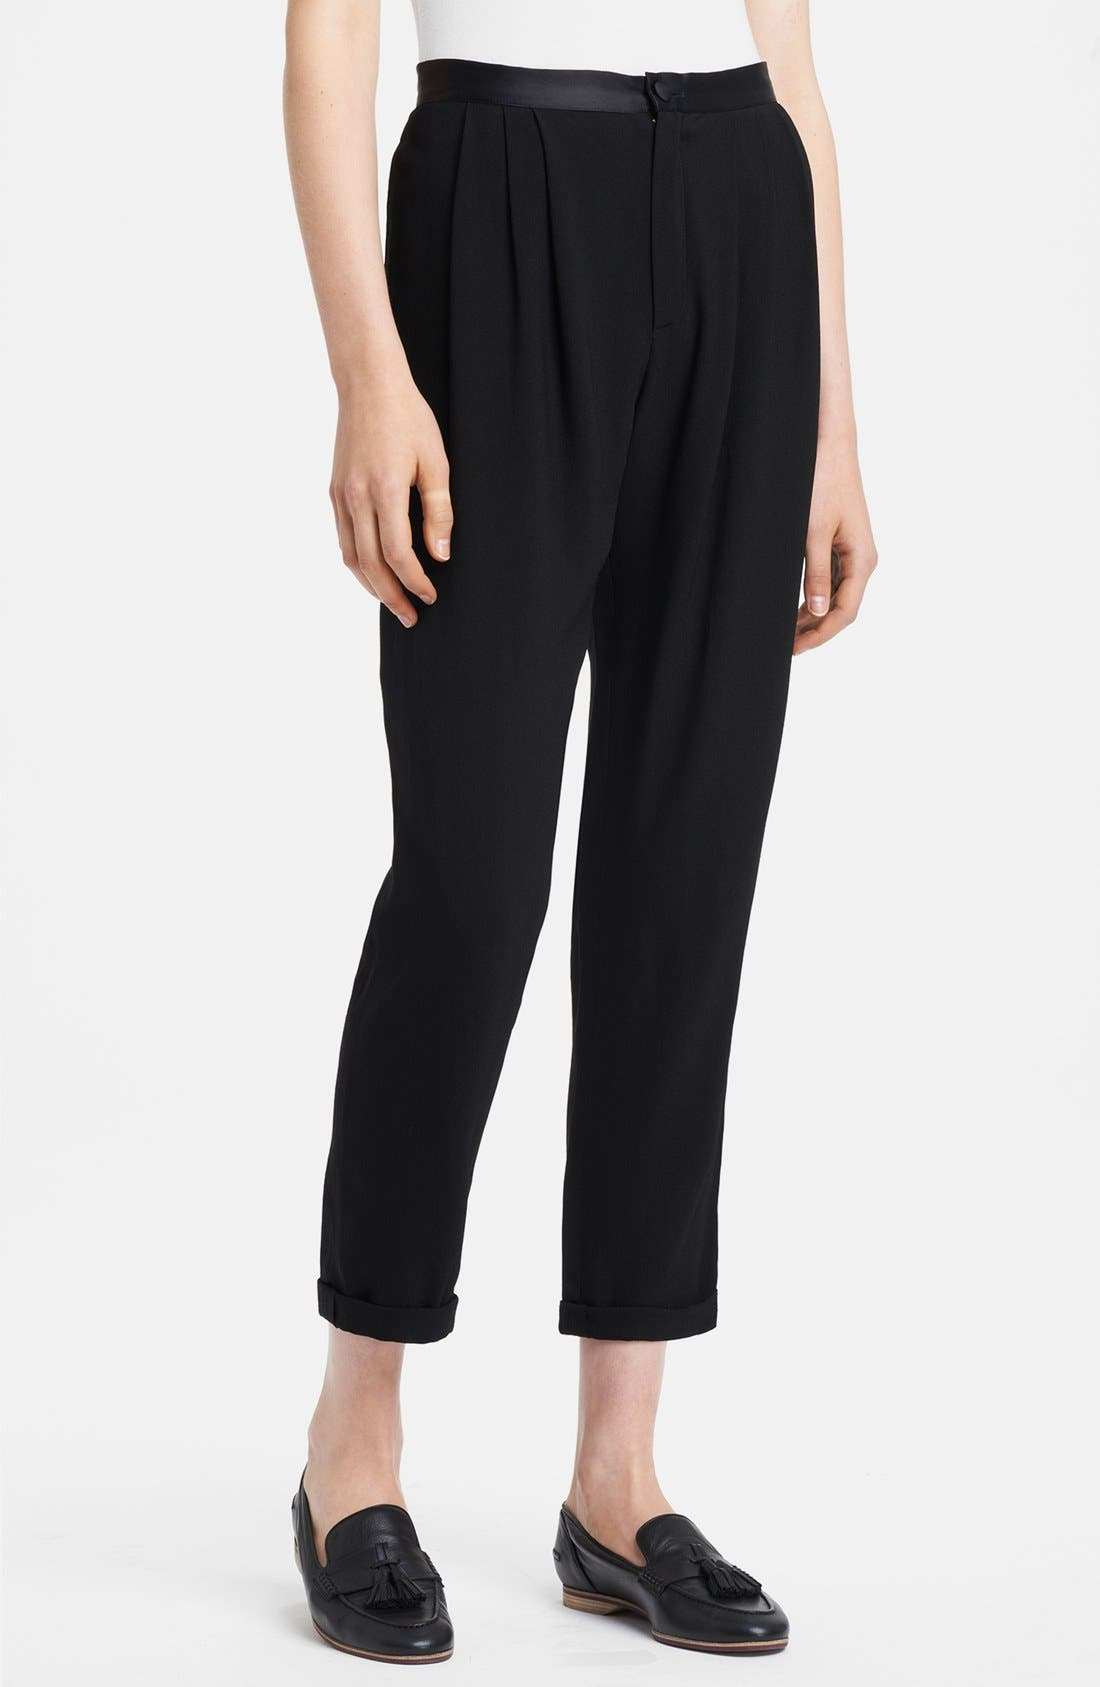 Alternate Image 1 Selected - Band of Outsiders 'Amie' Cady Crop Pants